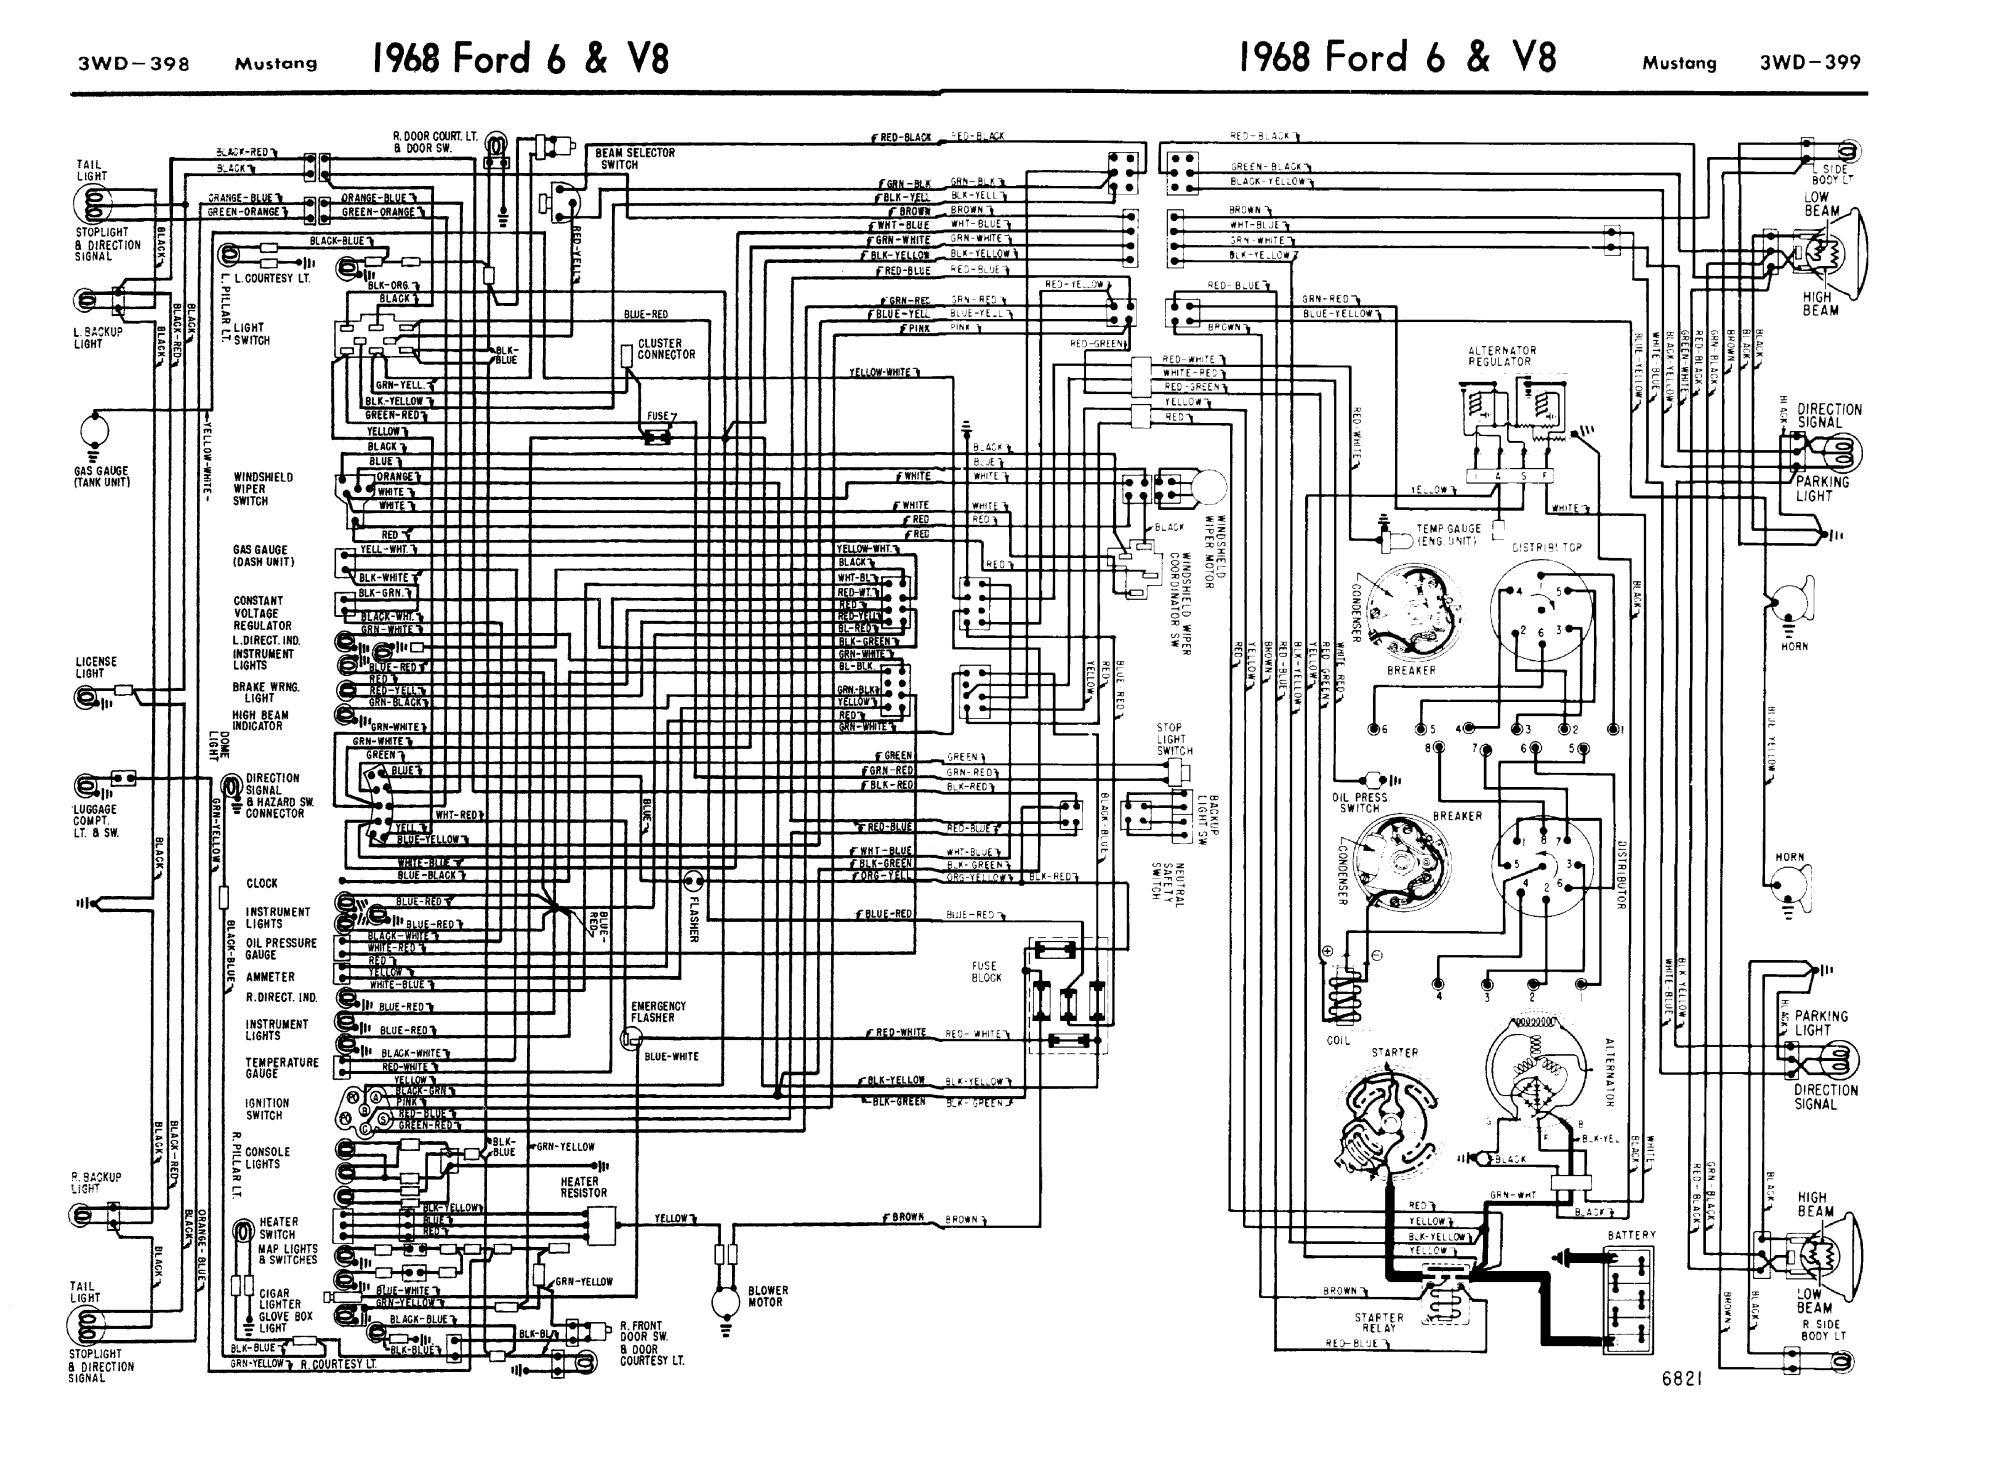 hight resolution of 1968 ford mustang wiring harness diagram completed wiring diagrams 96 civic dash wiring diagram 1968 mustang